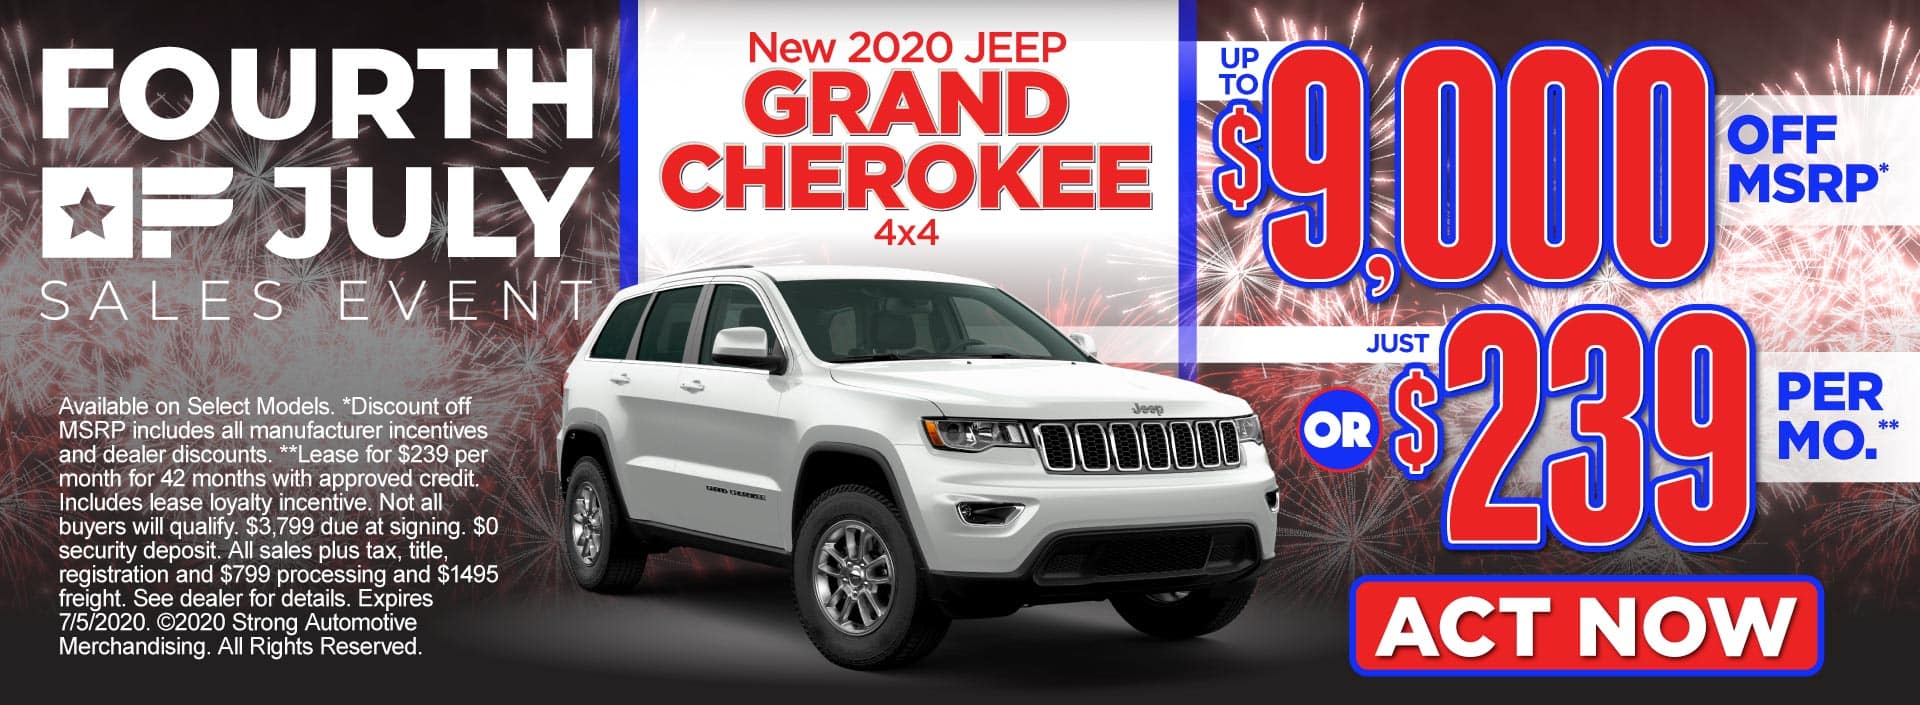 New 2020 Jeep Grand Cherokee – up to $9,000 off MSRP* or just $239 per month** – Click to View Inventory